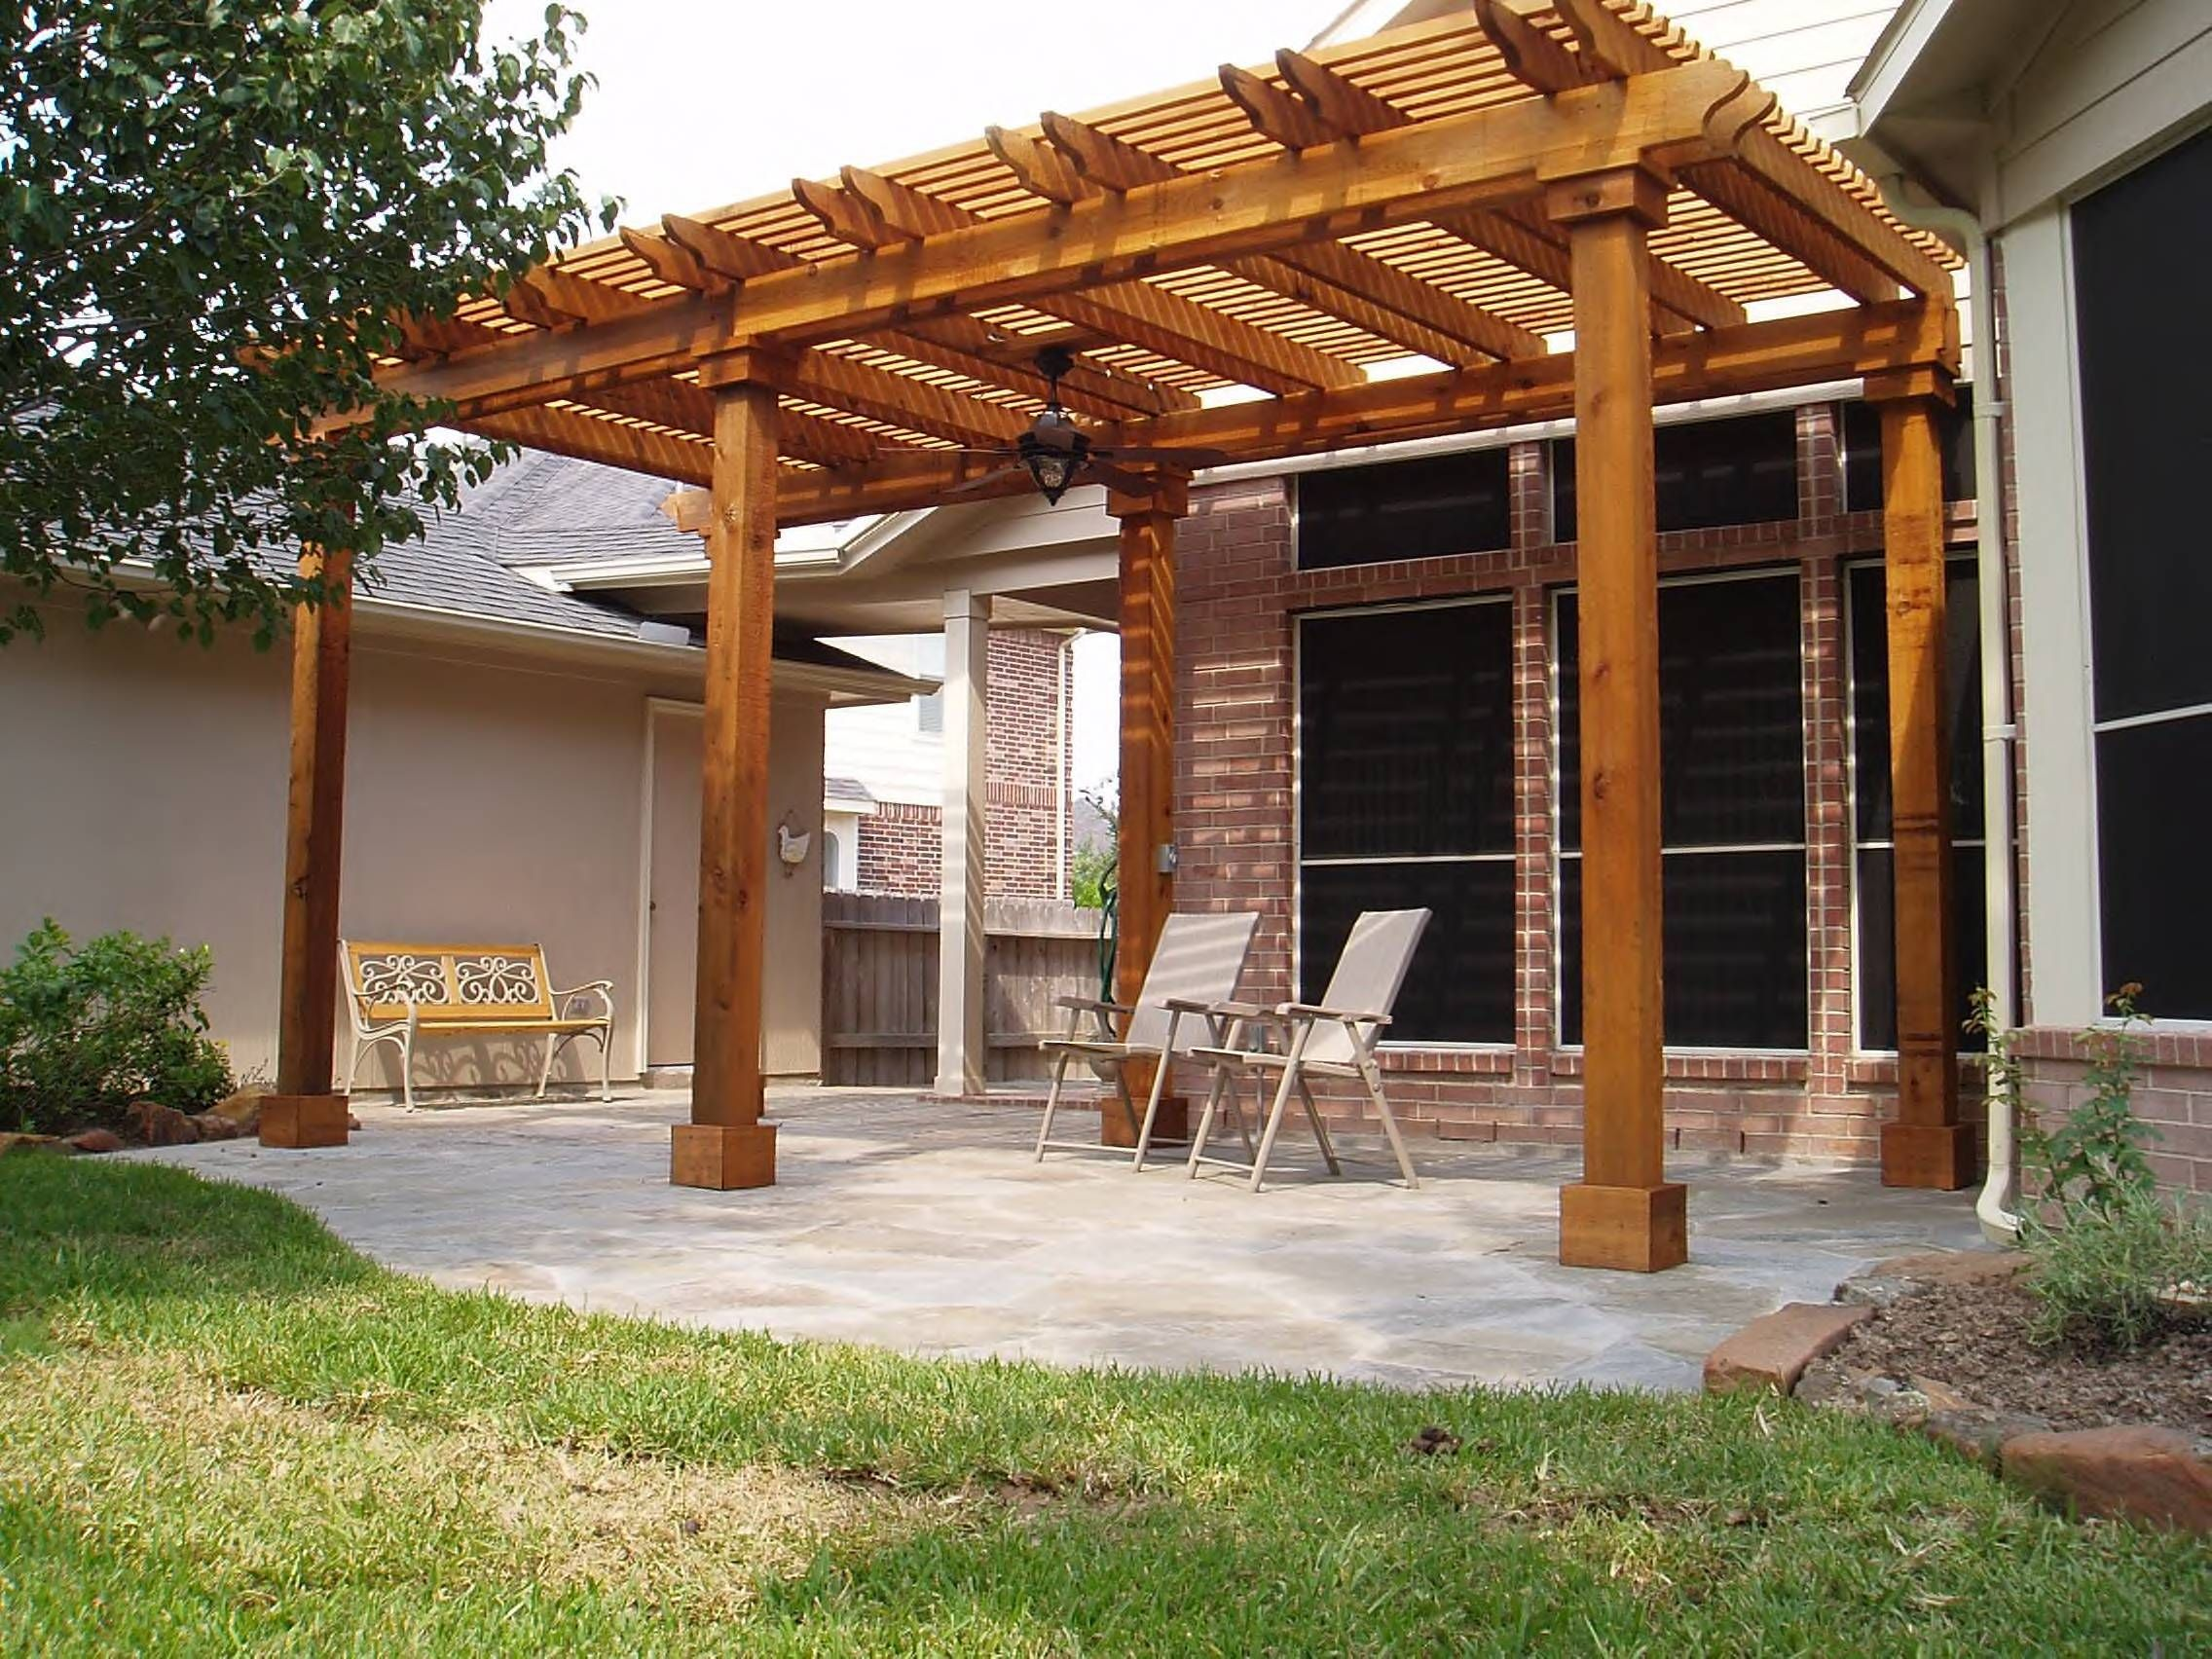 Bricks Mahogany Pergola Deck Roof Cover With Simple Furniture In Backyard